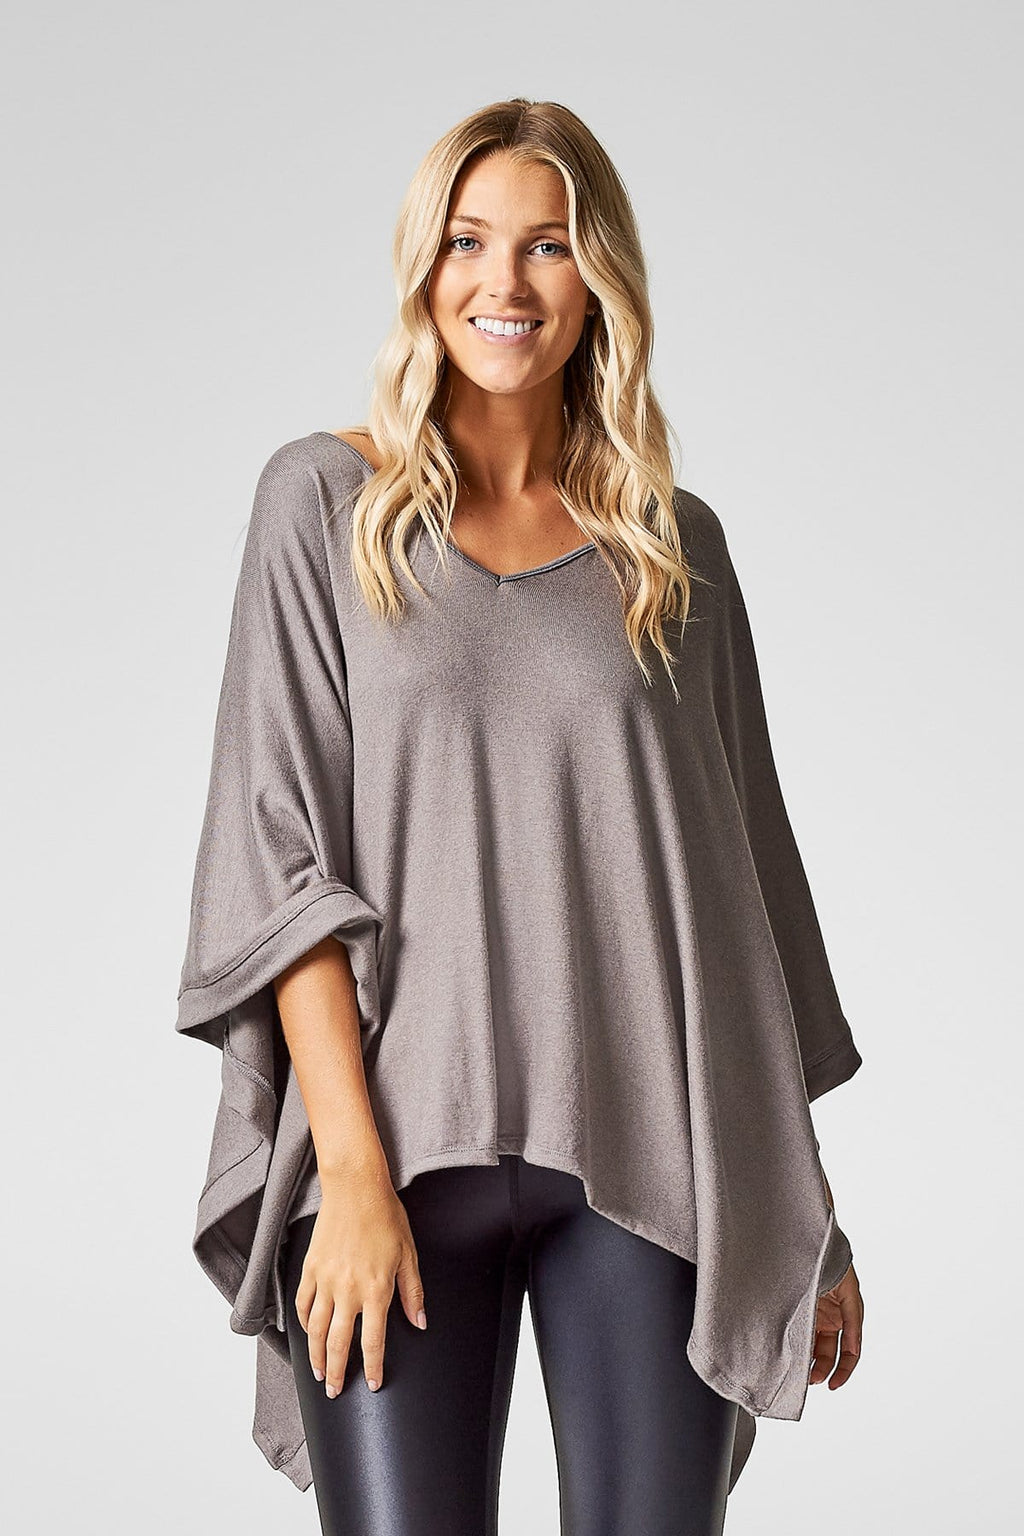 A woman wears a light grey poncho with black liquid leggings.